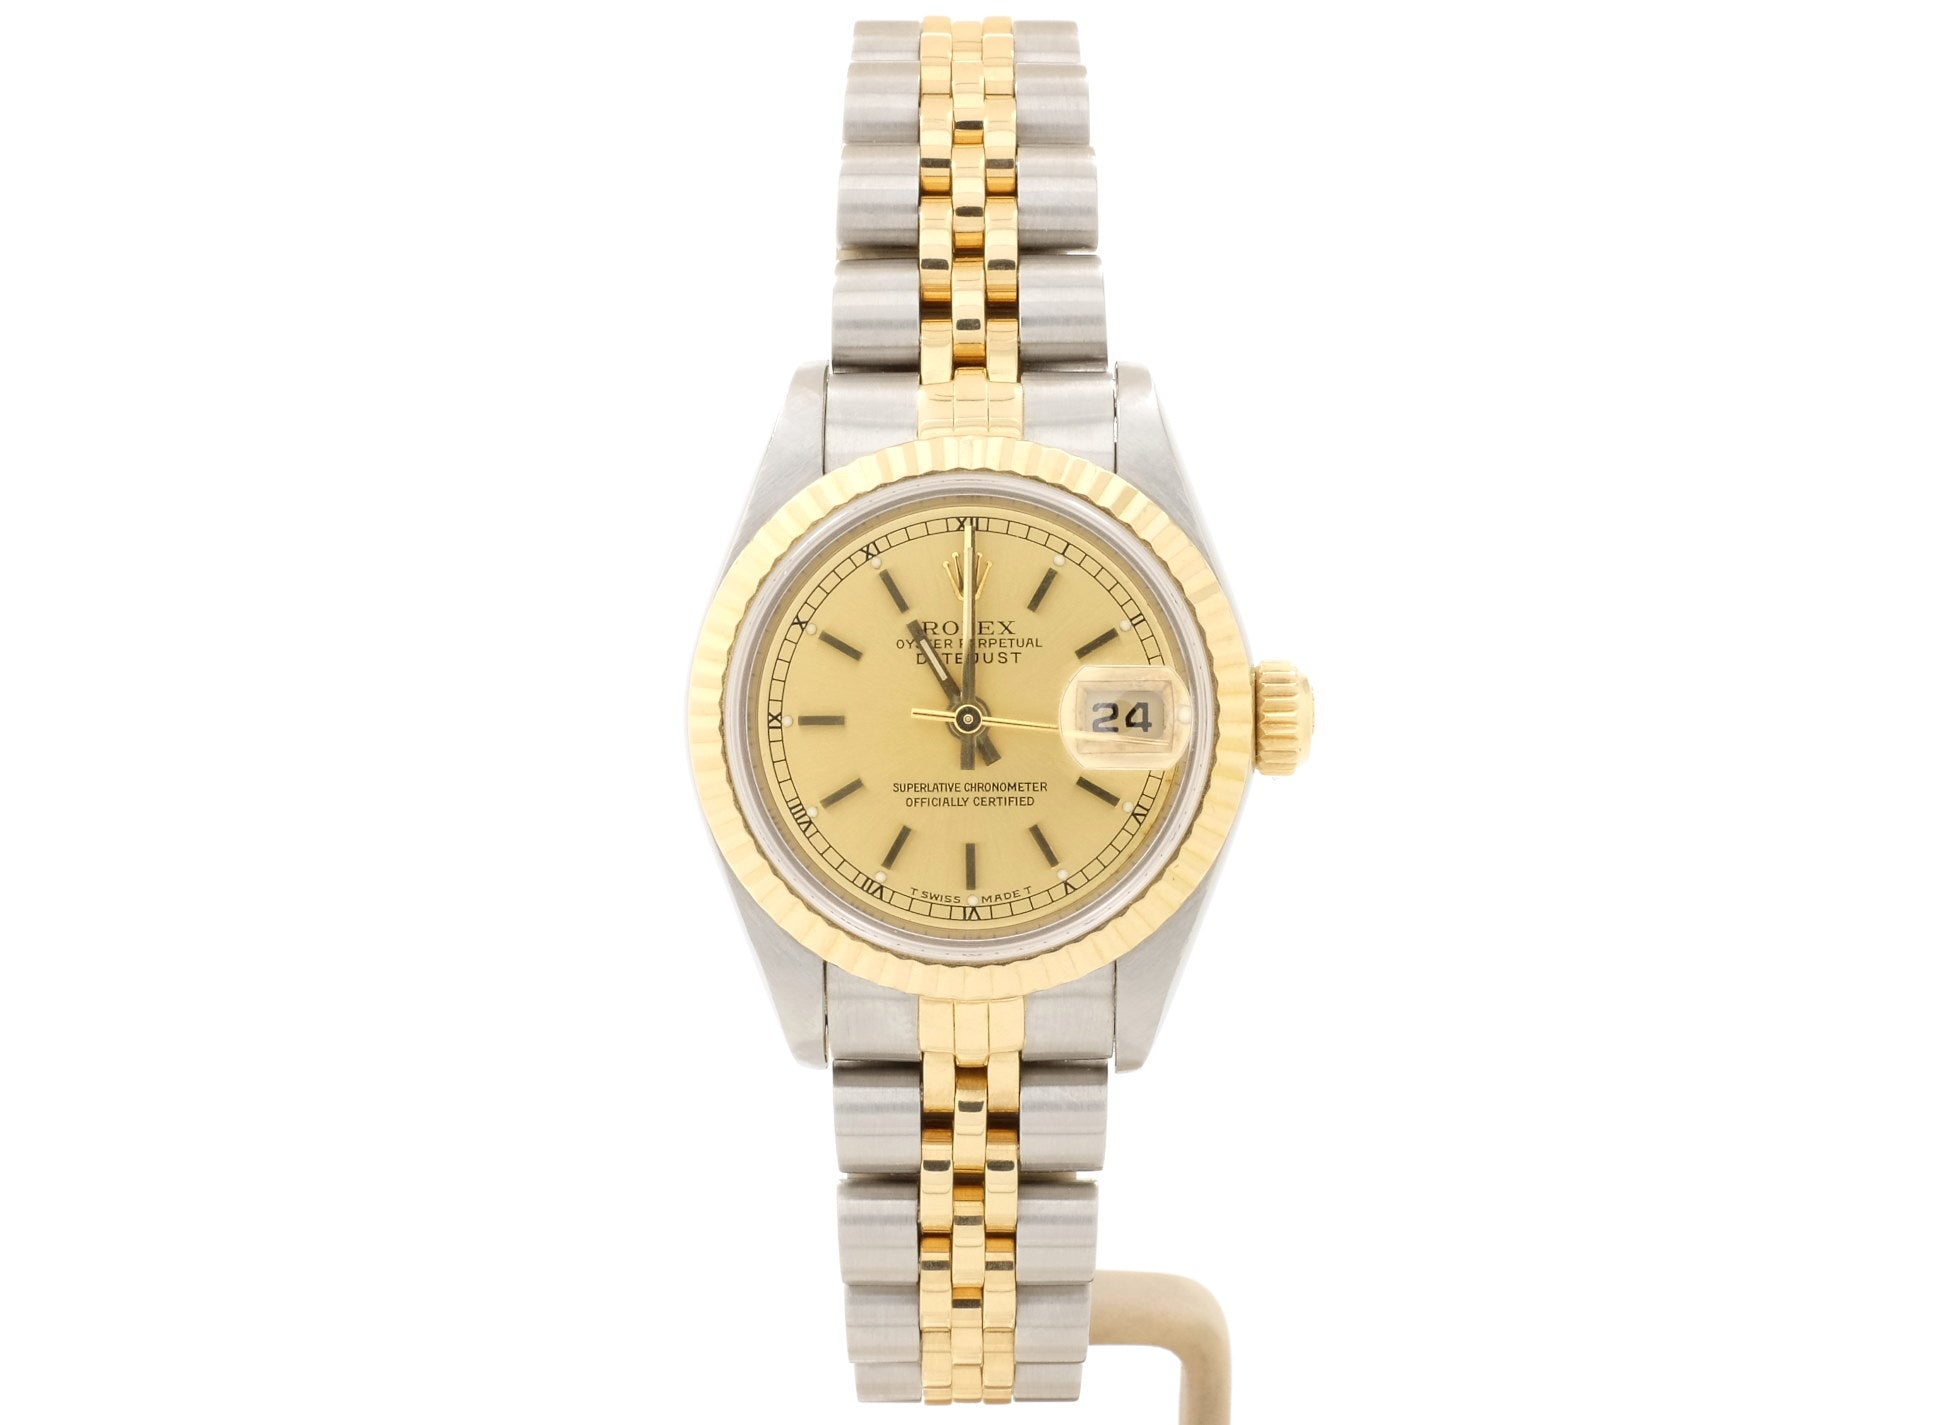 Elegant 26mm Rolex LADY-DATEJUST Model 69173 with Champagne Dial